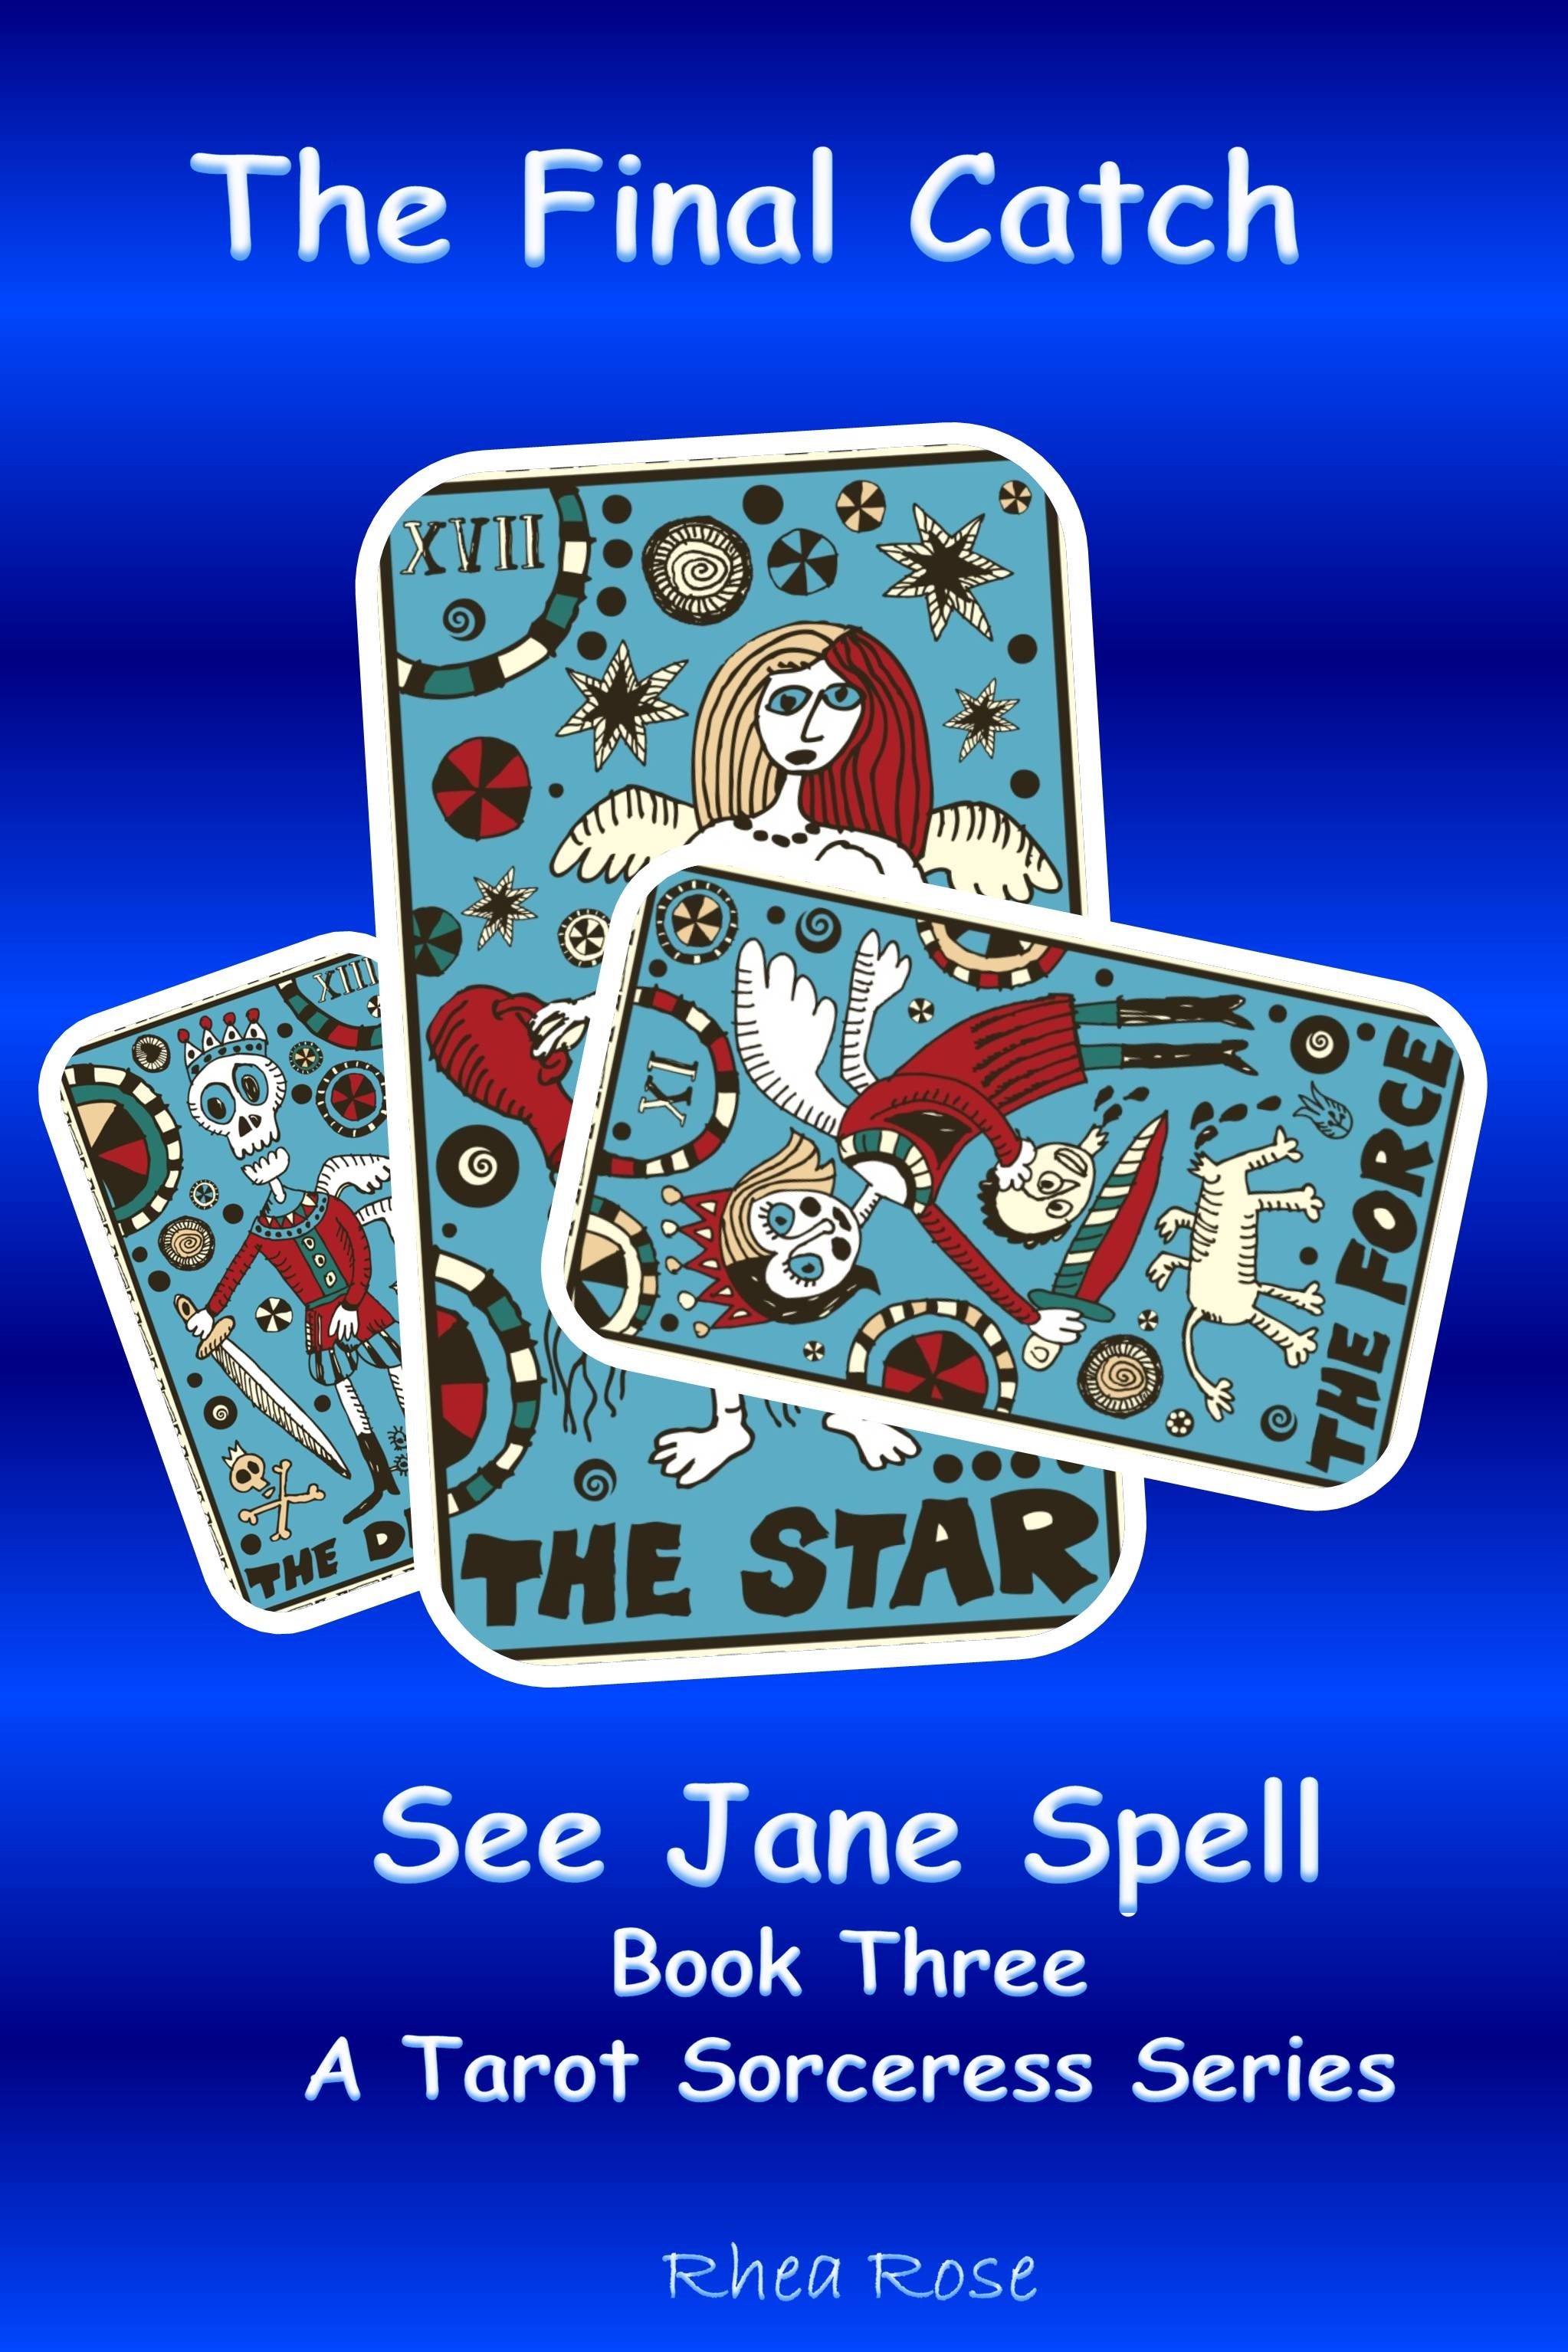 converted ebook three see jane spell